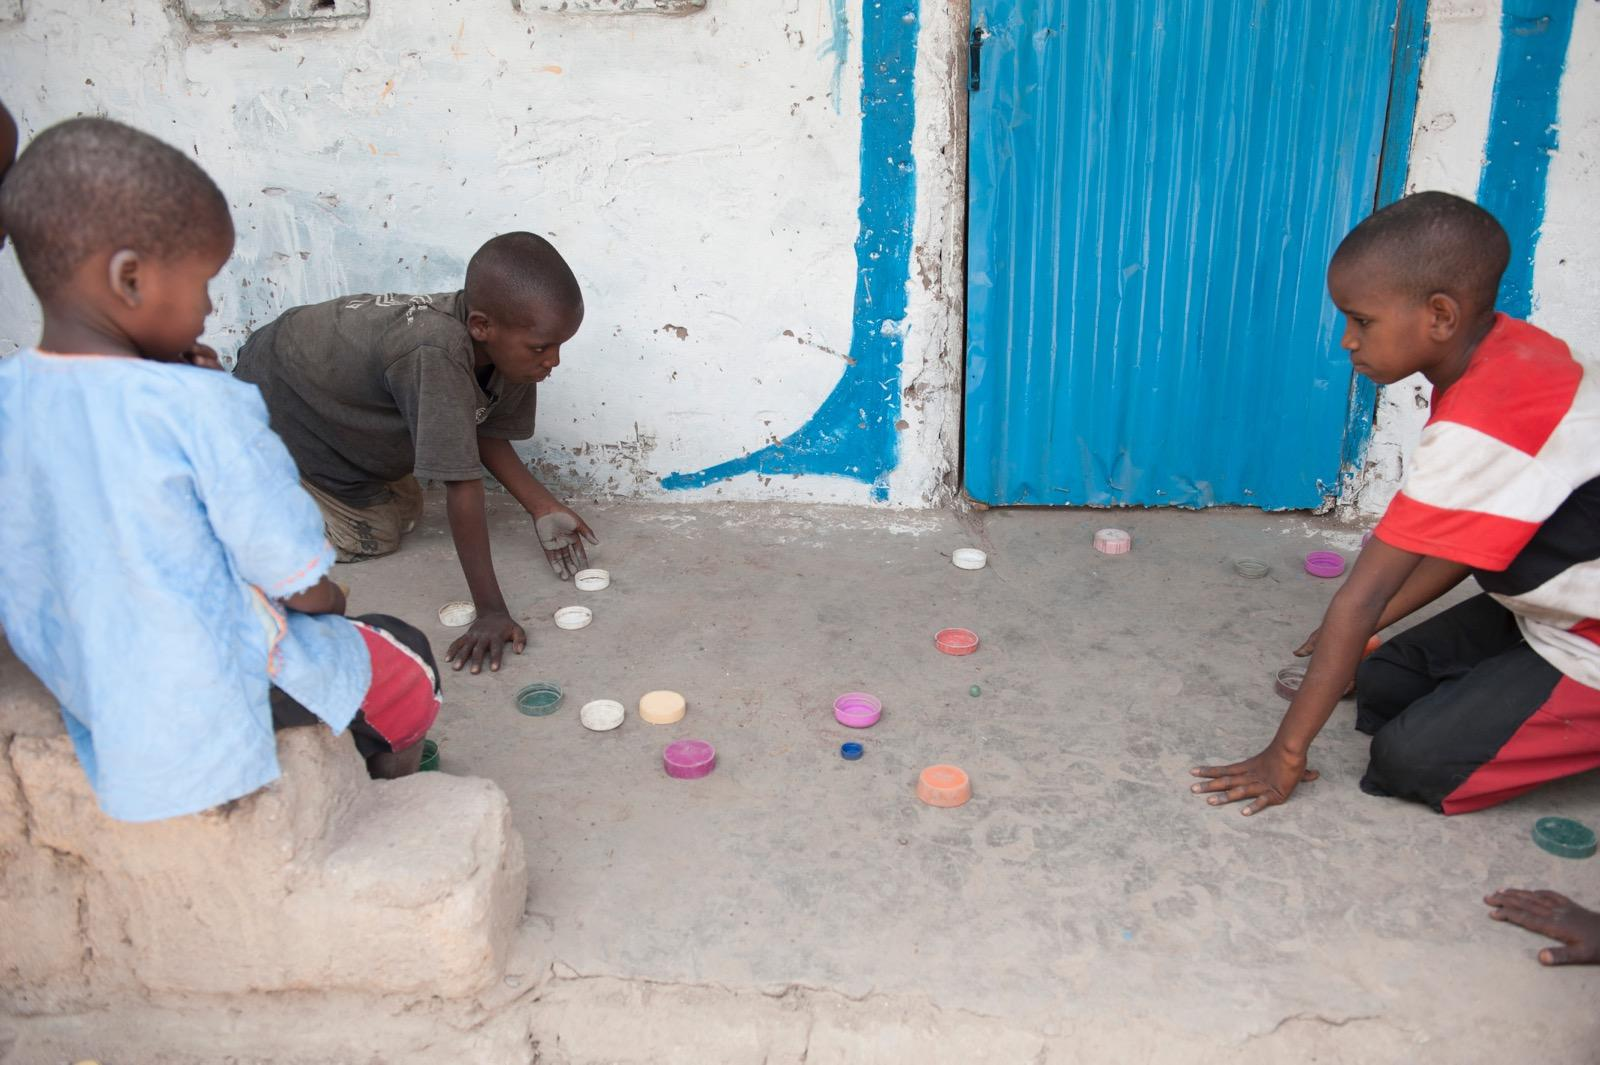 Boys playing a game